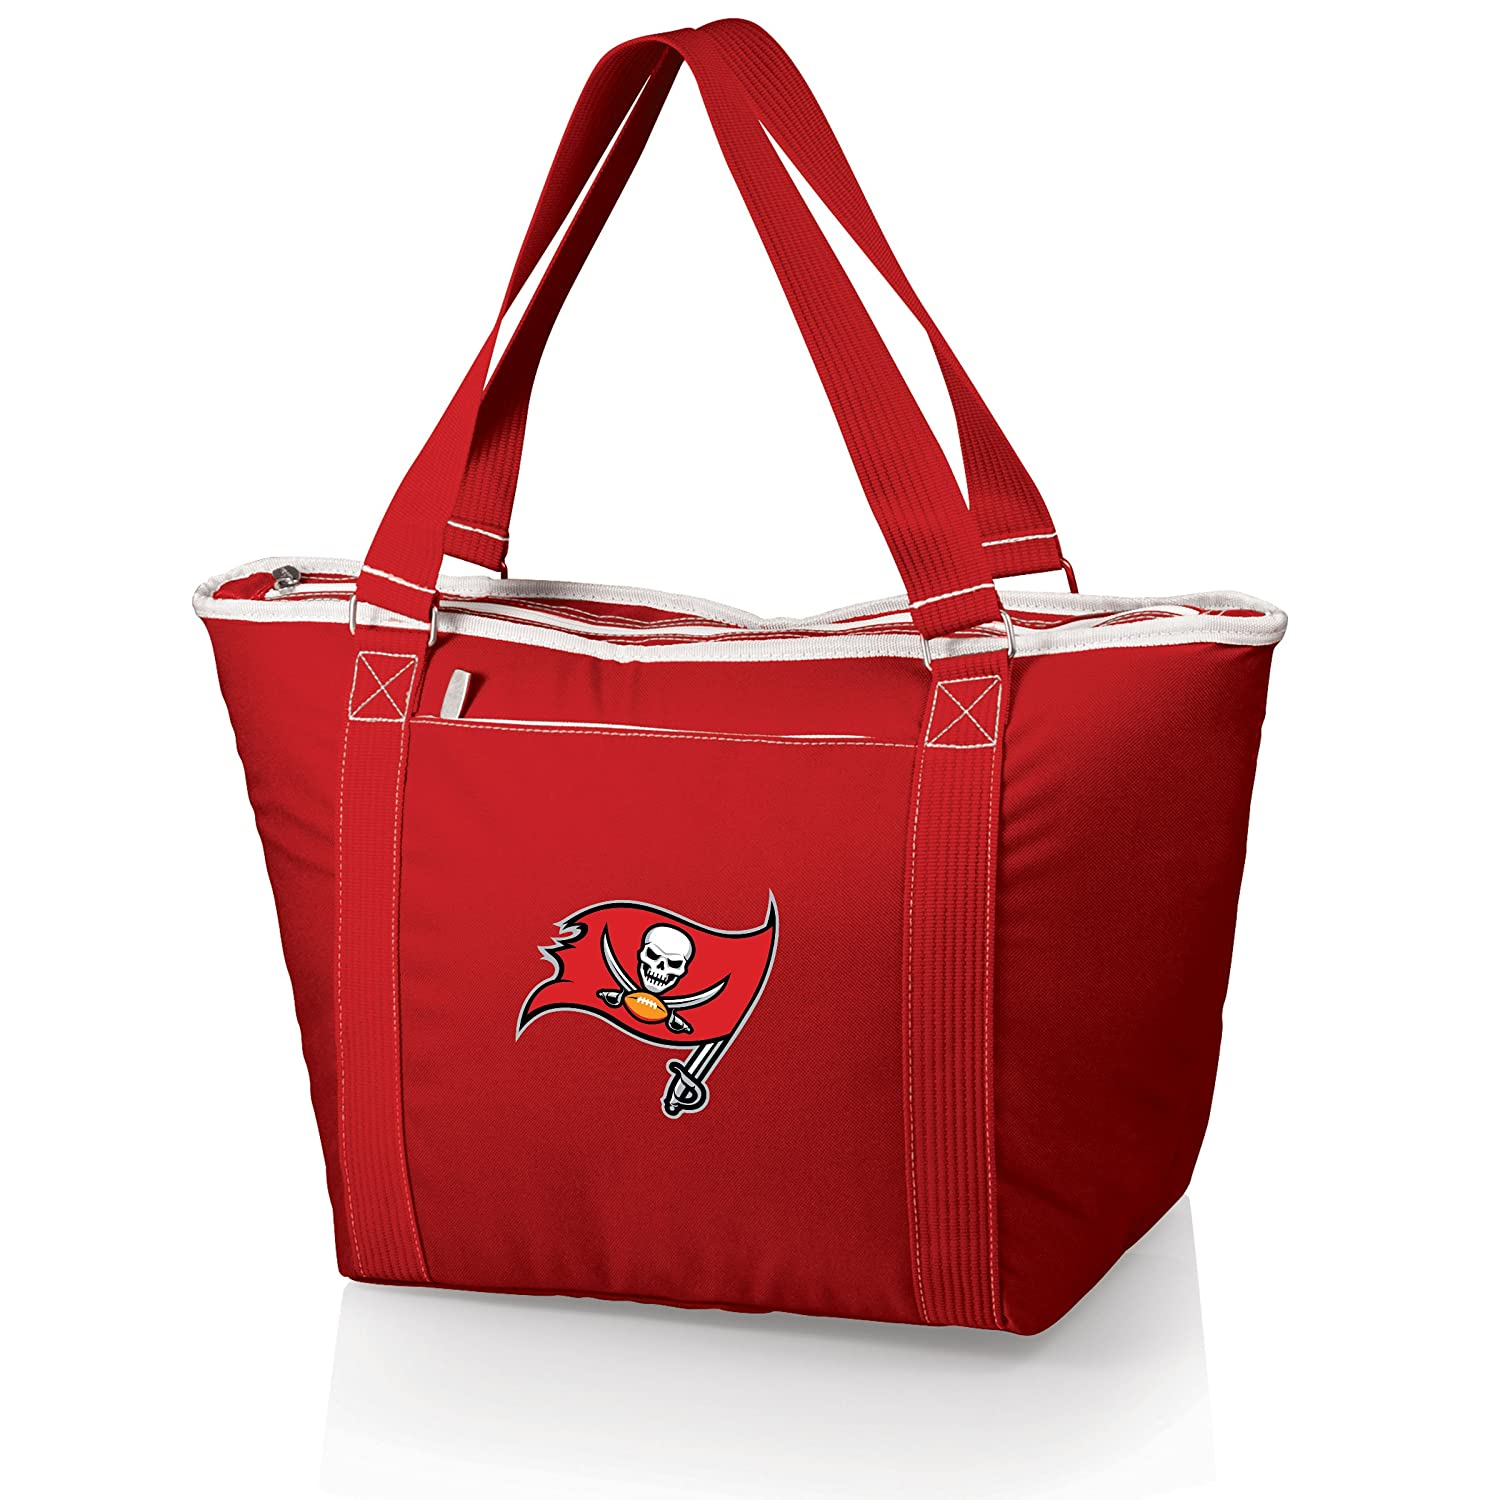 NFL Tampa Bay Buccaneers Topanga Insulated Cooler Tote Red